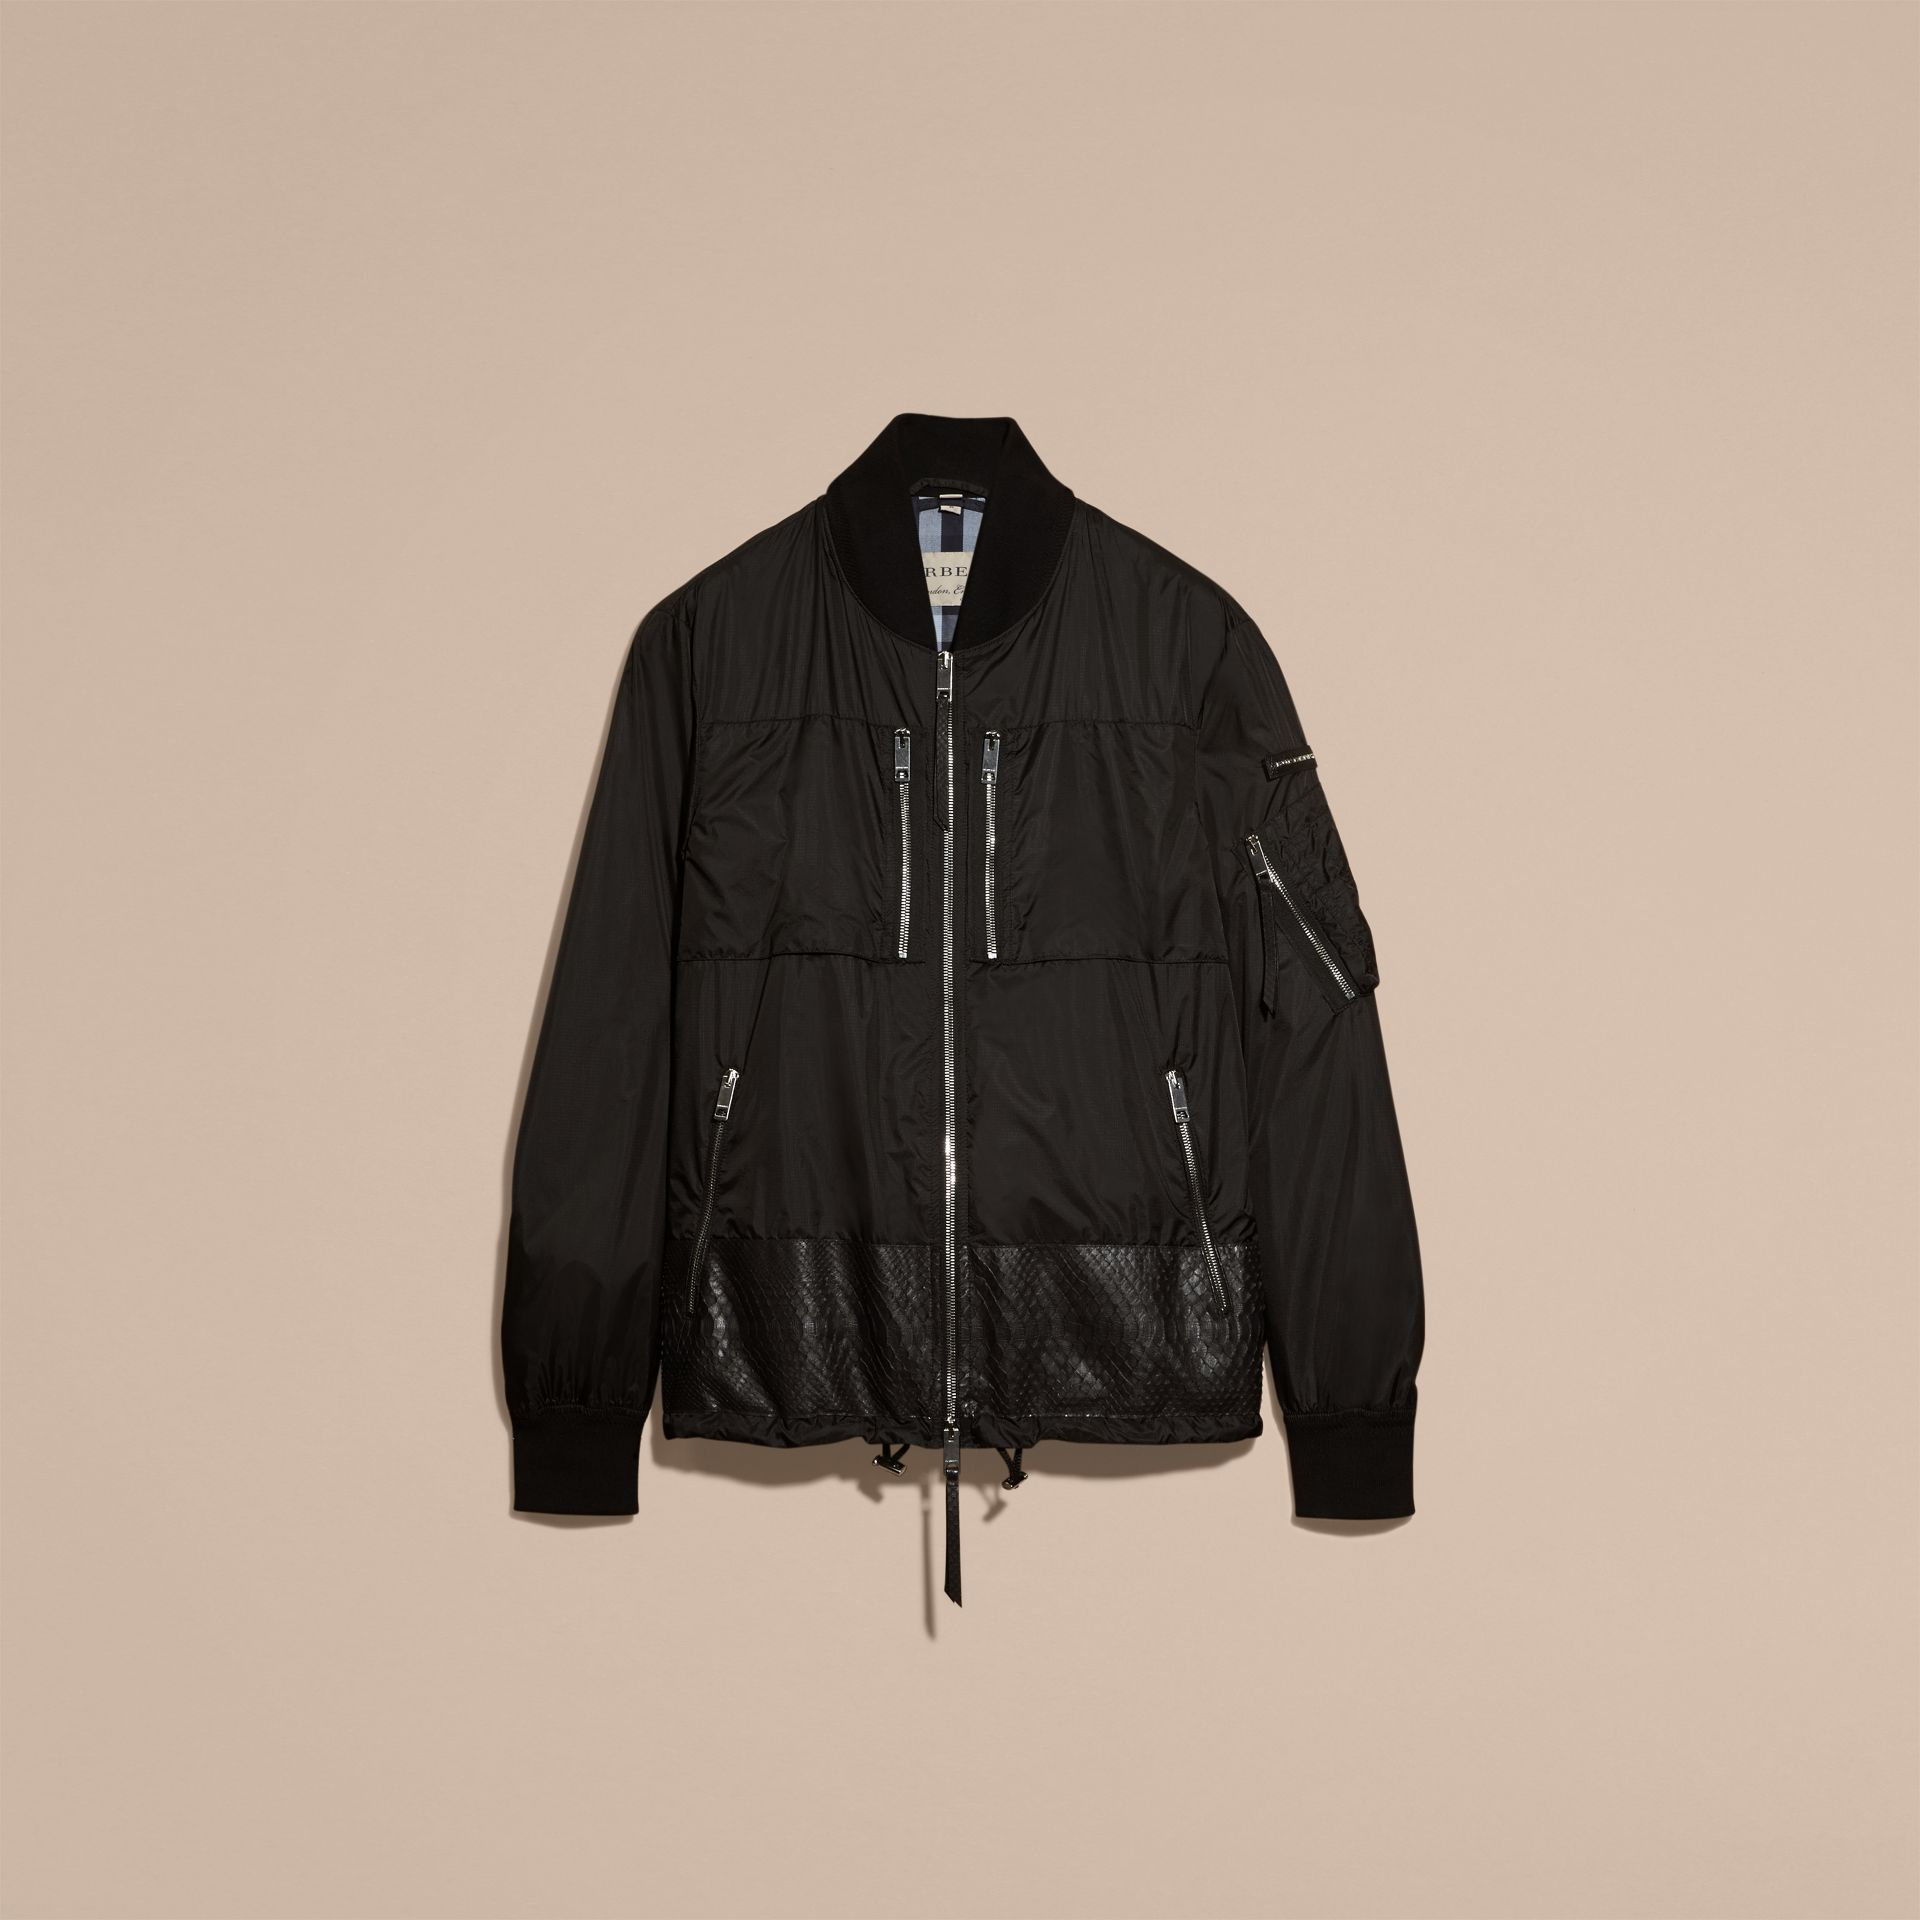 Lightweight Technical Bomber Jacket with Snakeskin in Black - Men | Burberry Canada - gallery image 4